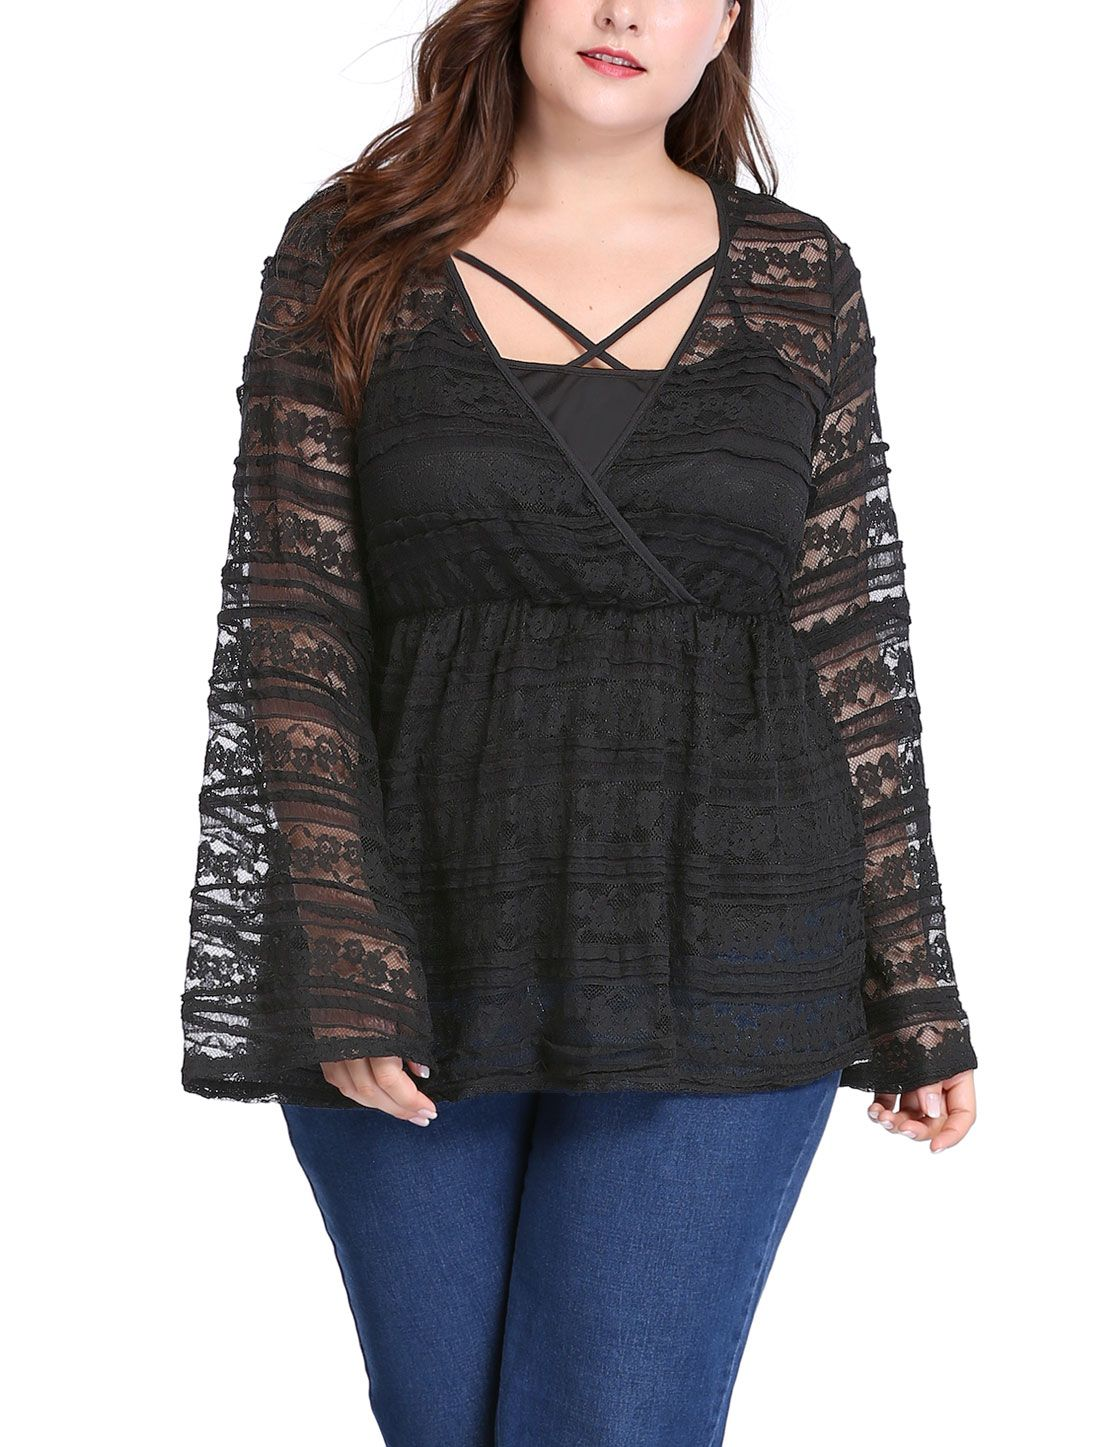 4a28d1756a2 Women Plus Size Bell Sleeves Sheer Lace Babydoll Top w Camisole Sets